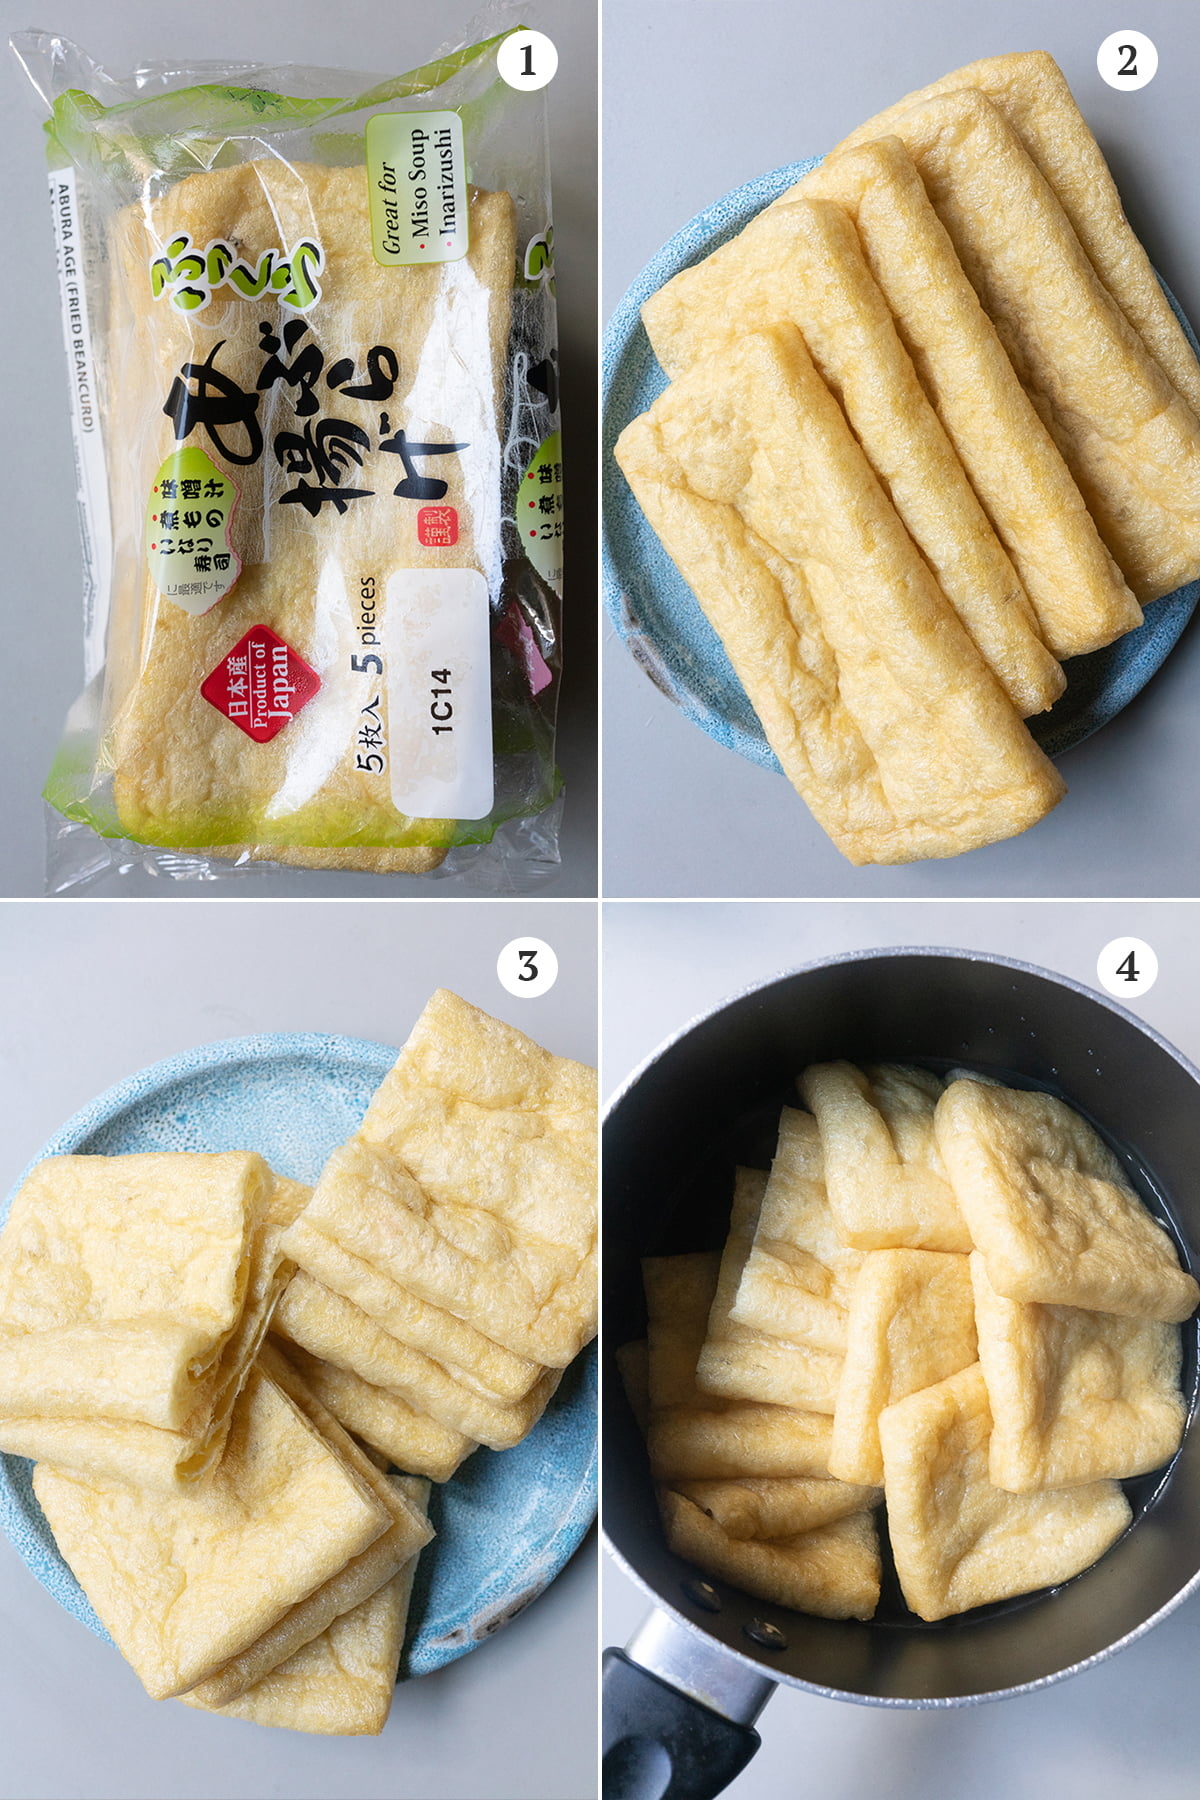 Collage of how to prepare aburage photos. Featuring: 1) a package of aburage, 2) five aburage pieces on a plate, 3) ten pieces of cut aburage pockets, 4) soaking the cut aburage in a bowl of hot water then drain.